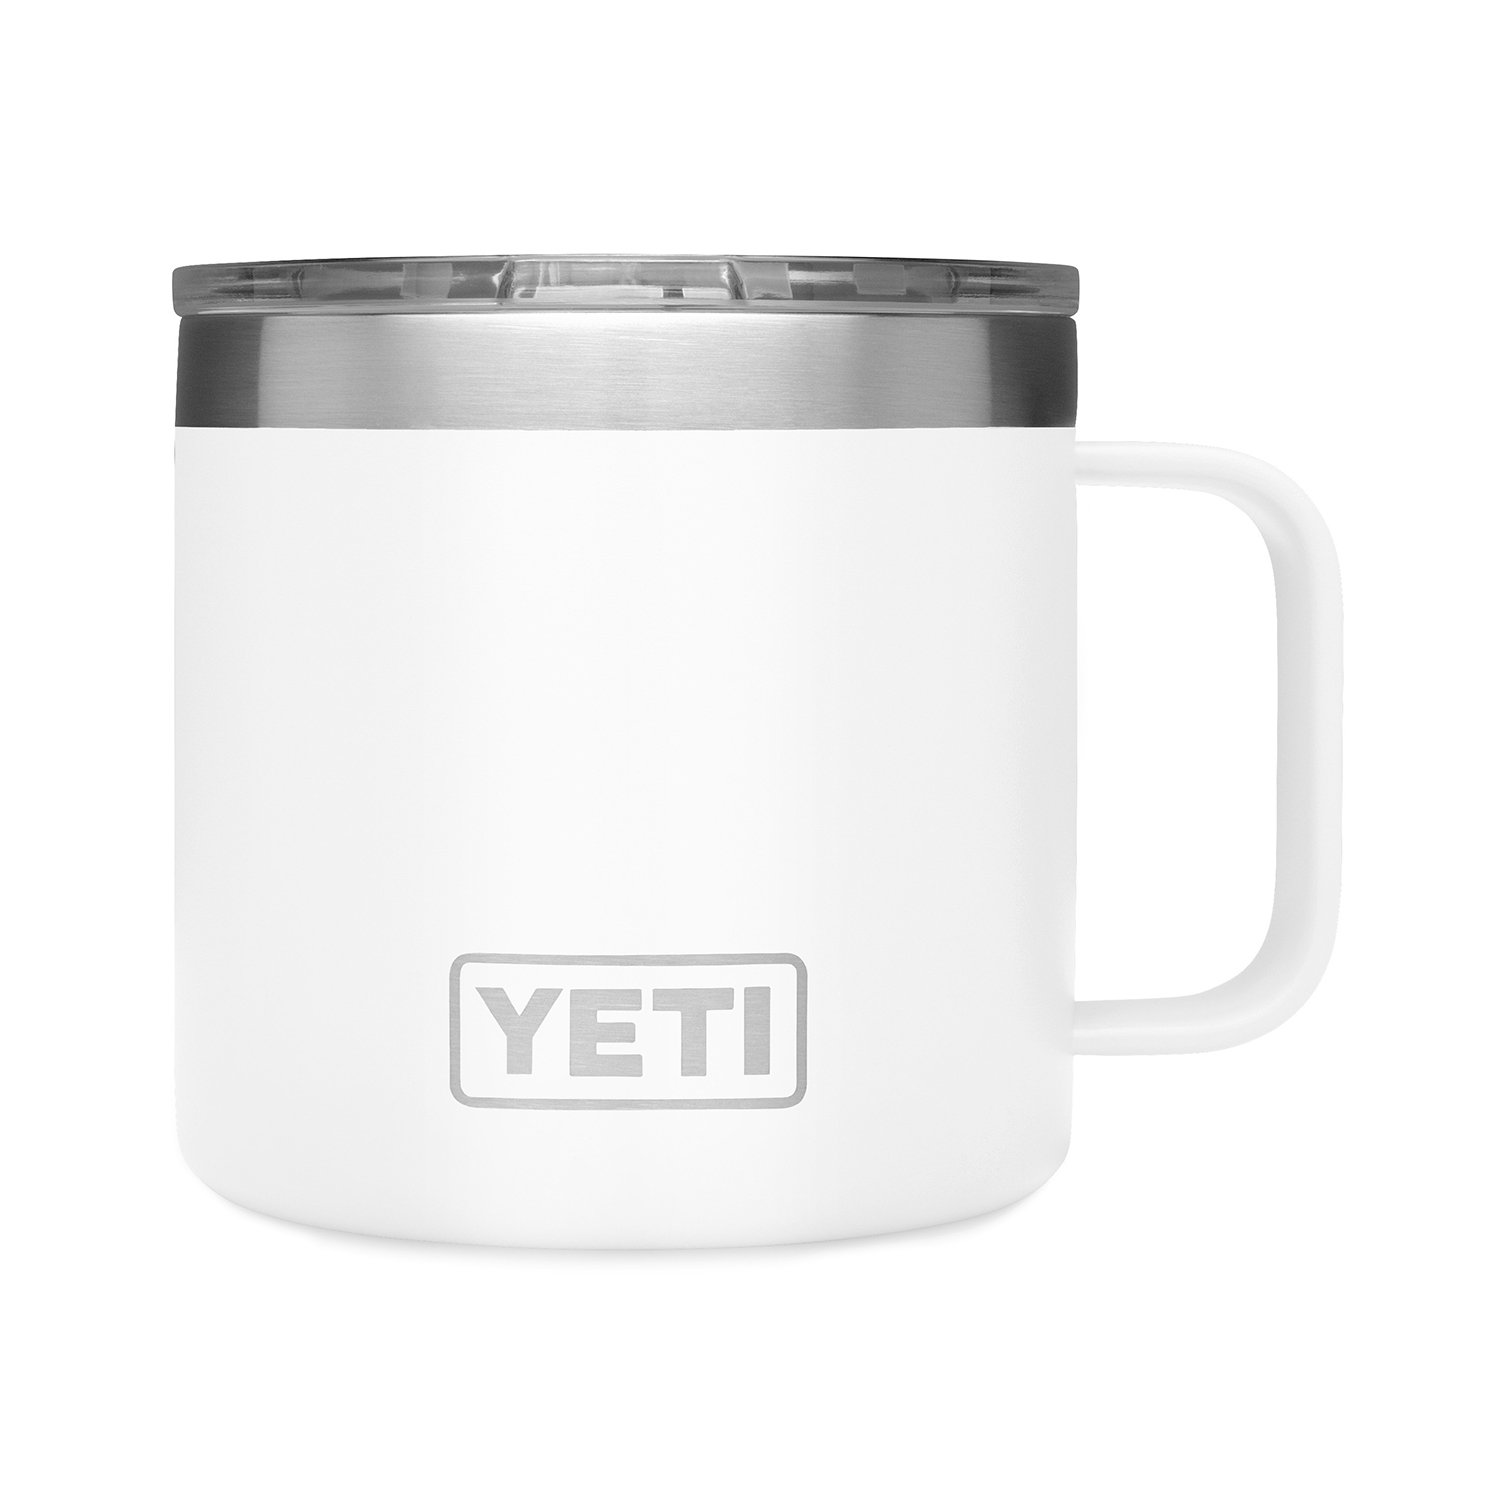 White Yeti mug made of stainless steel.